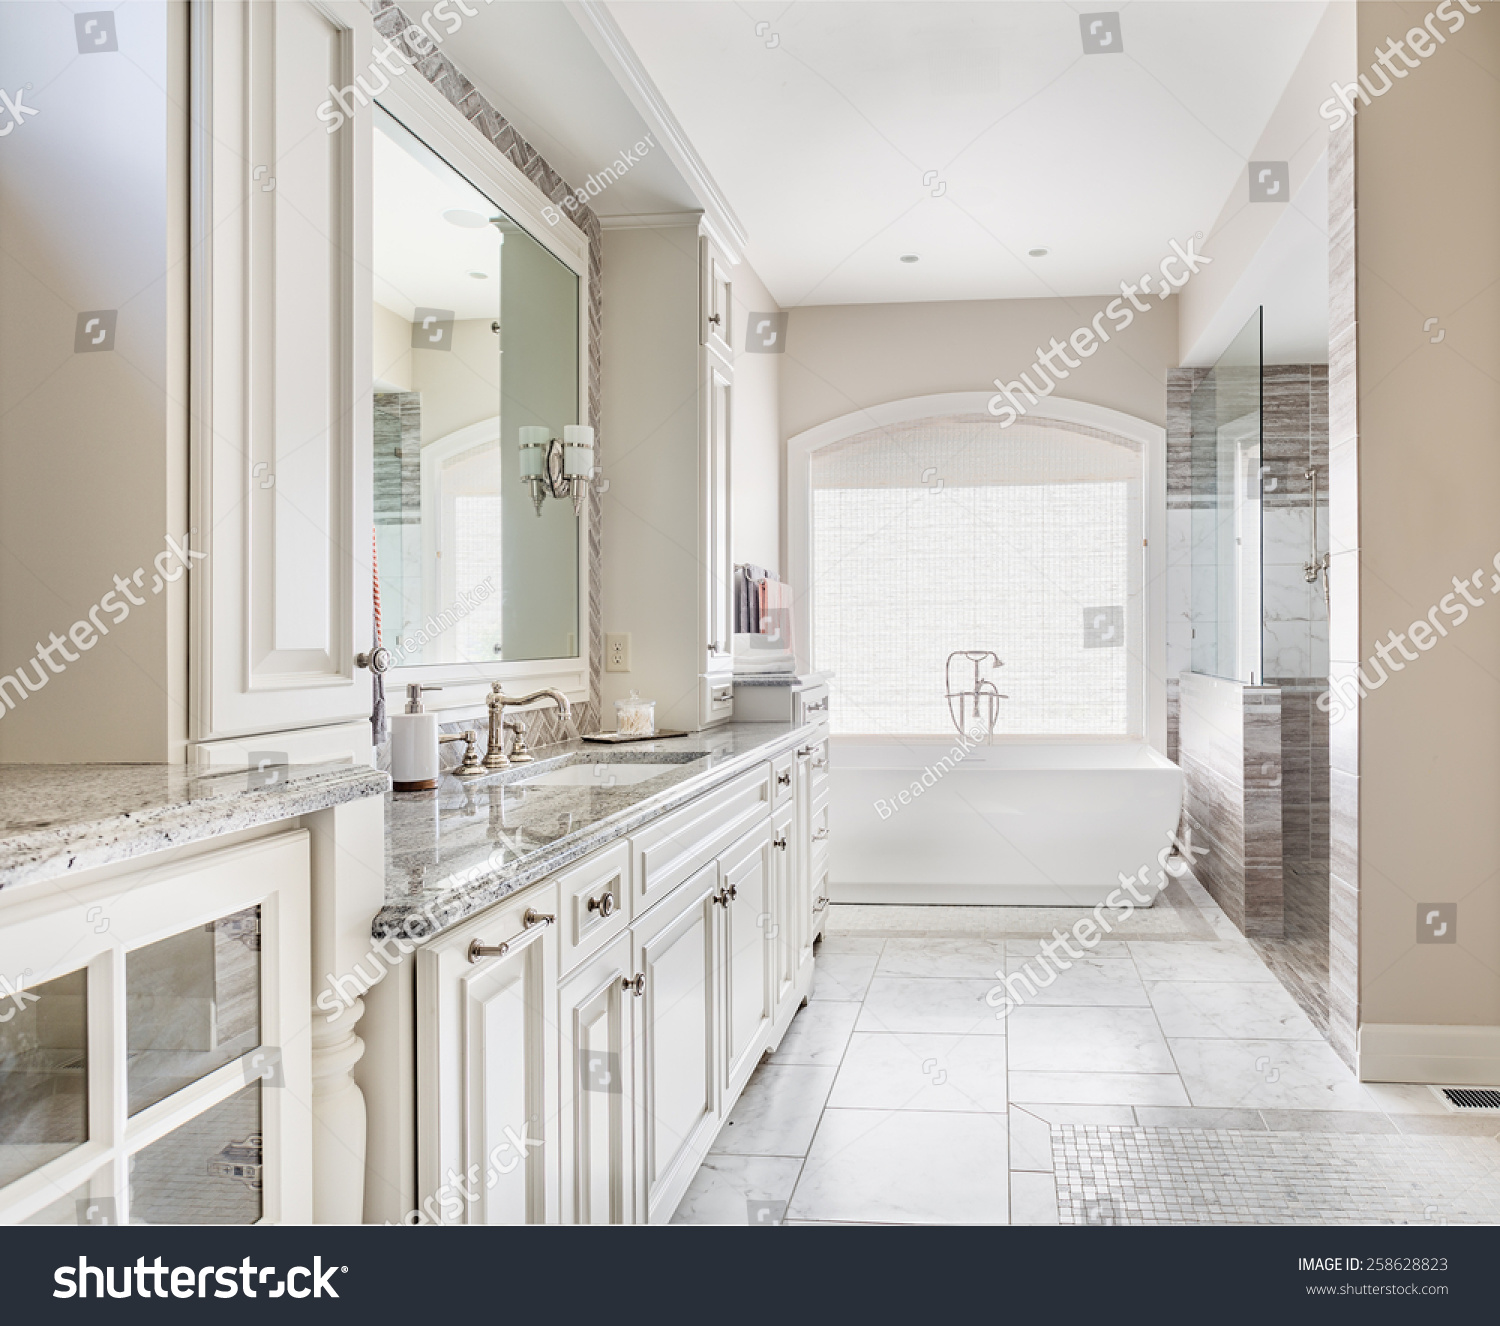 Large Bathroom In Luxury Home With Two Sinks, Tile Floors, Fancy Cabinets, Large Mirrors, And